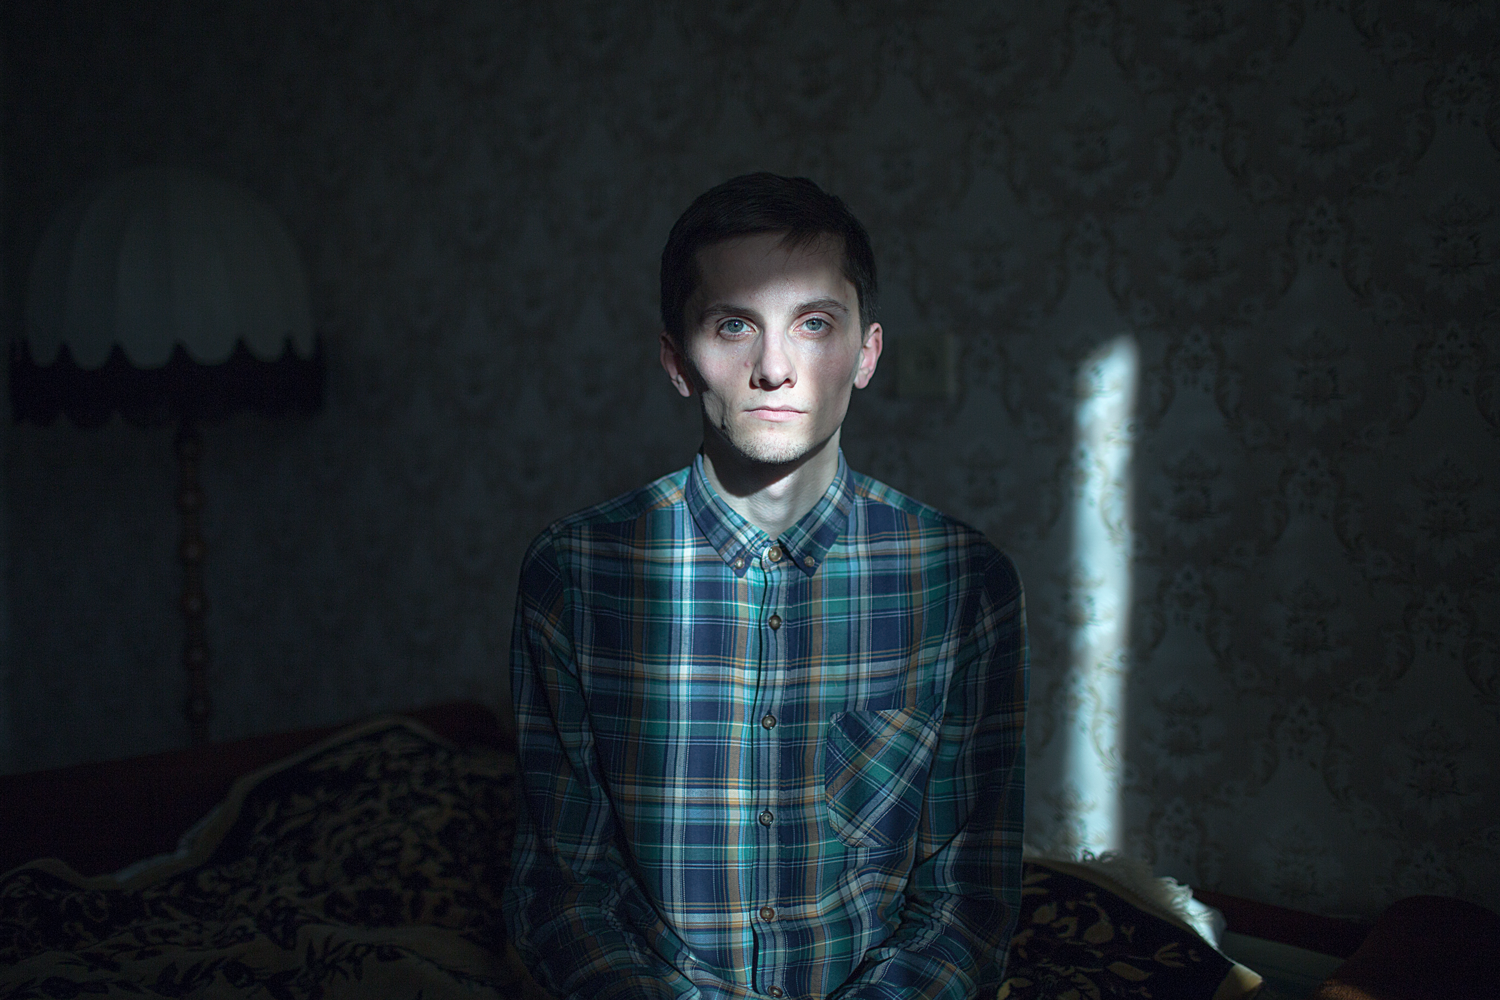 """Oleg, 27 years old, poses for a portrait at his apartment in St. Petersburg, Russia.    Oleg says: """"When it came to kissing a girl, I started laughing."""""""